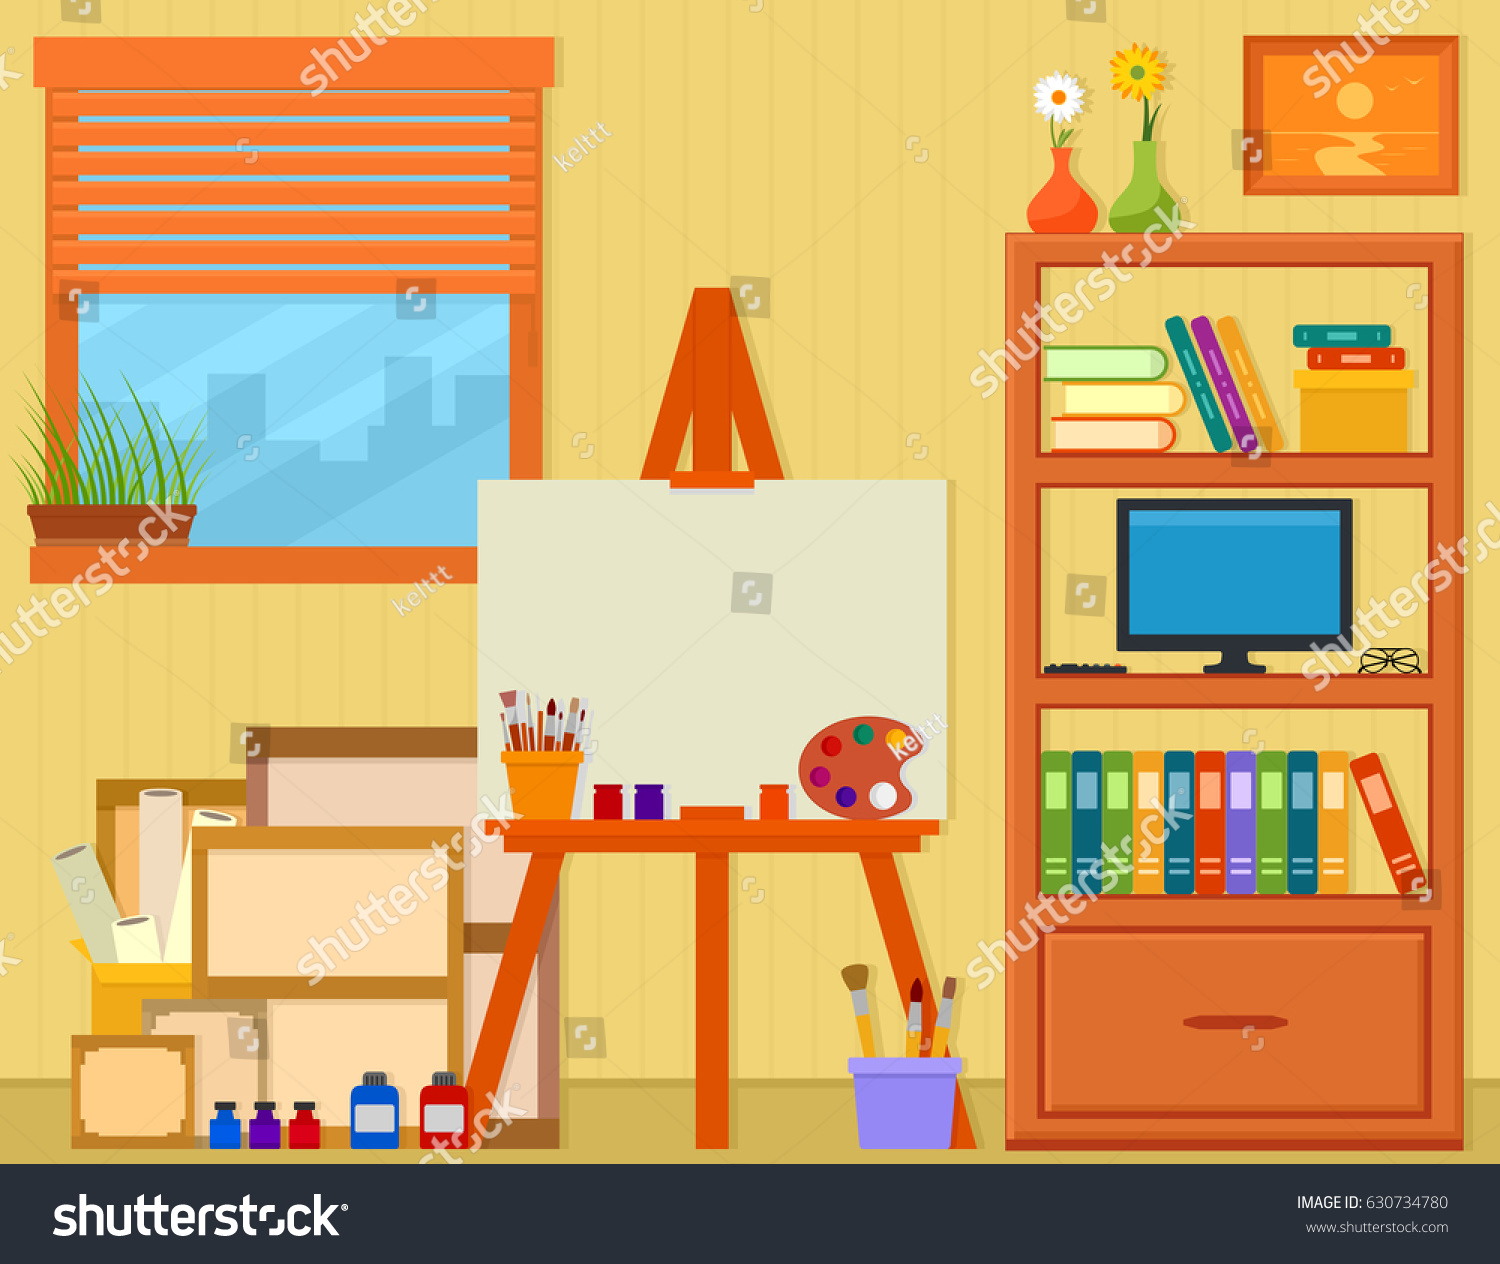 Home Art Studio Easel Painting Tools Stock Vector (2018) 630734780 ...